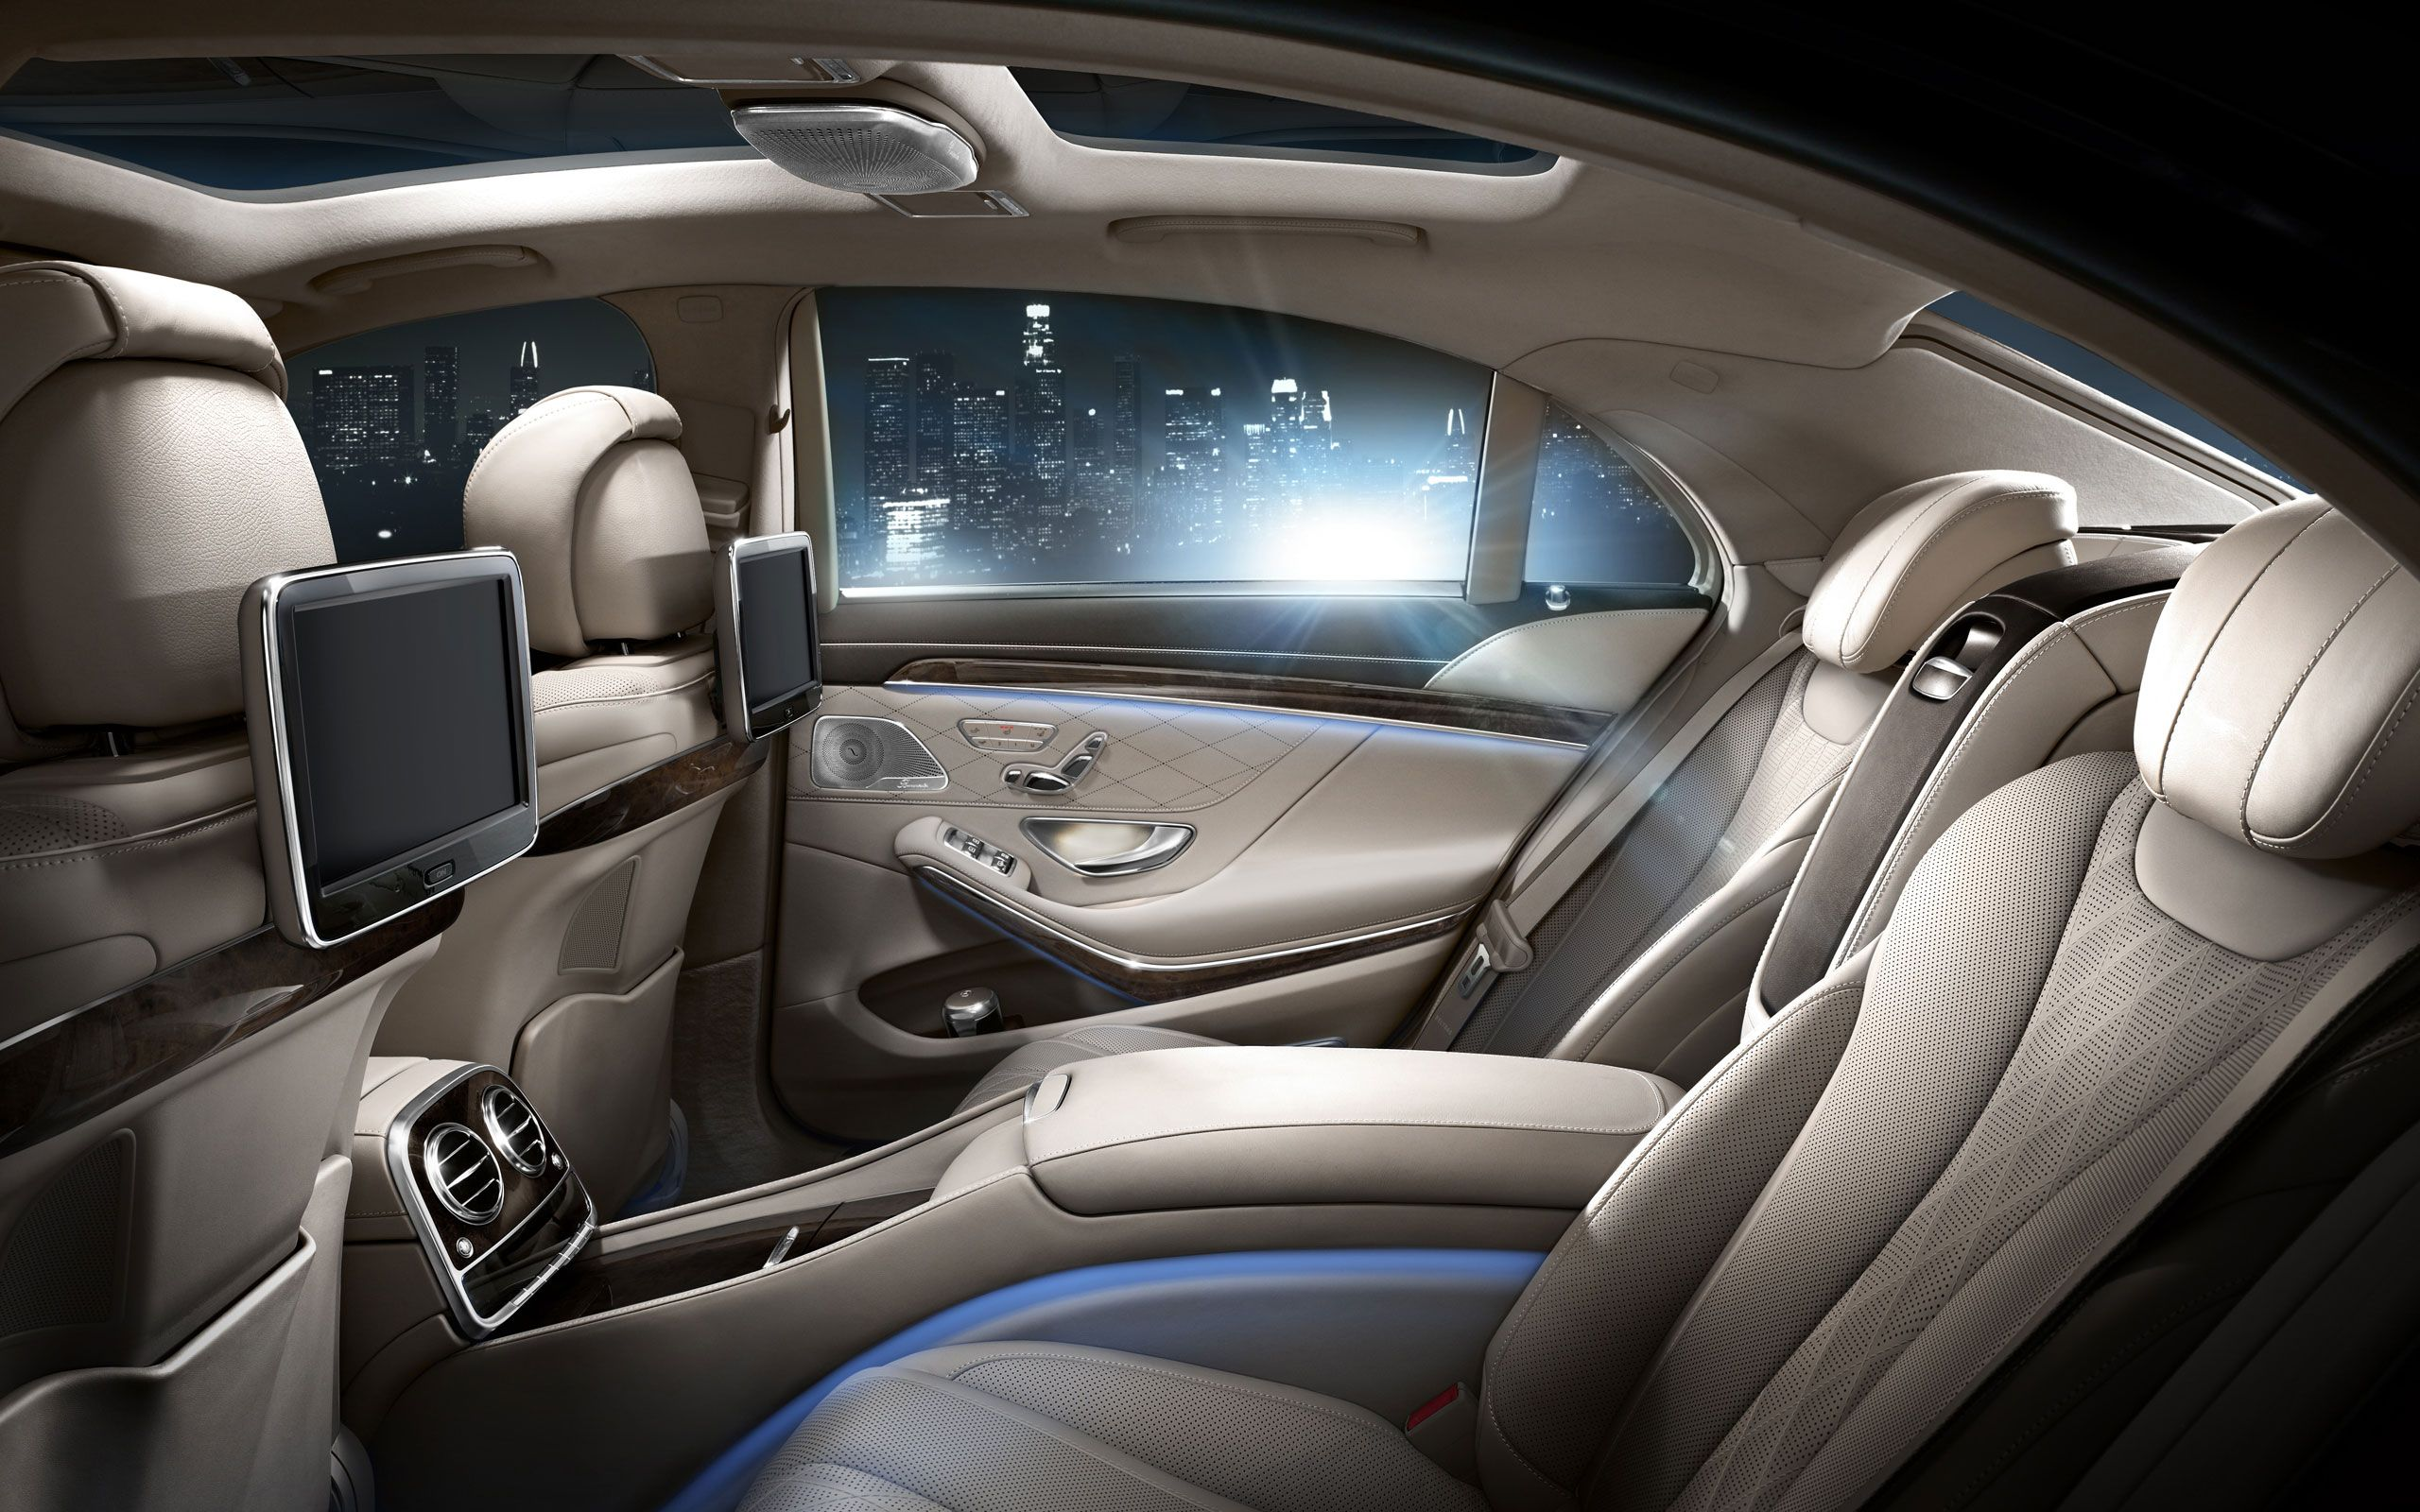 Mercedes s class 2015 interior one of my favorite cars it is also called the mercedes s class sedam